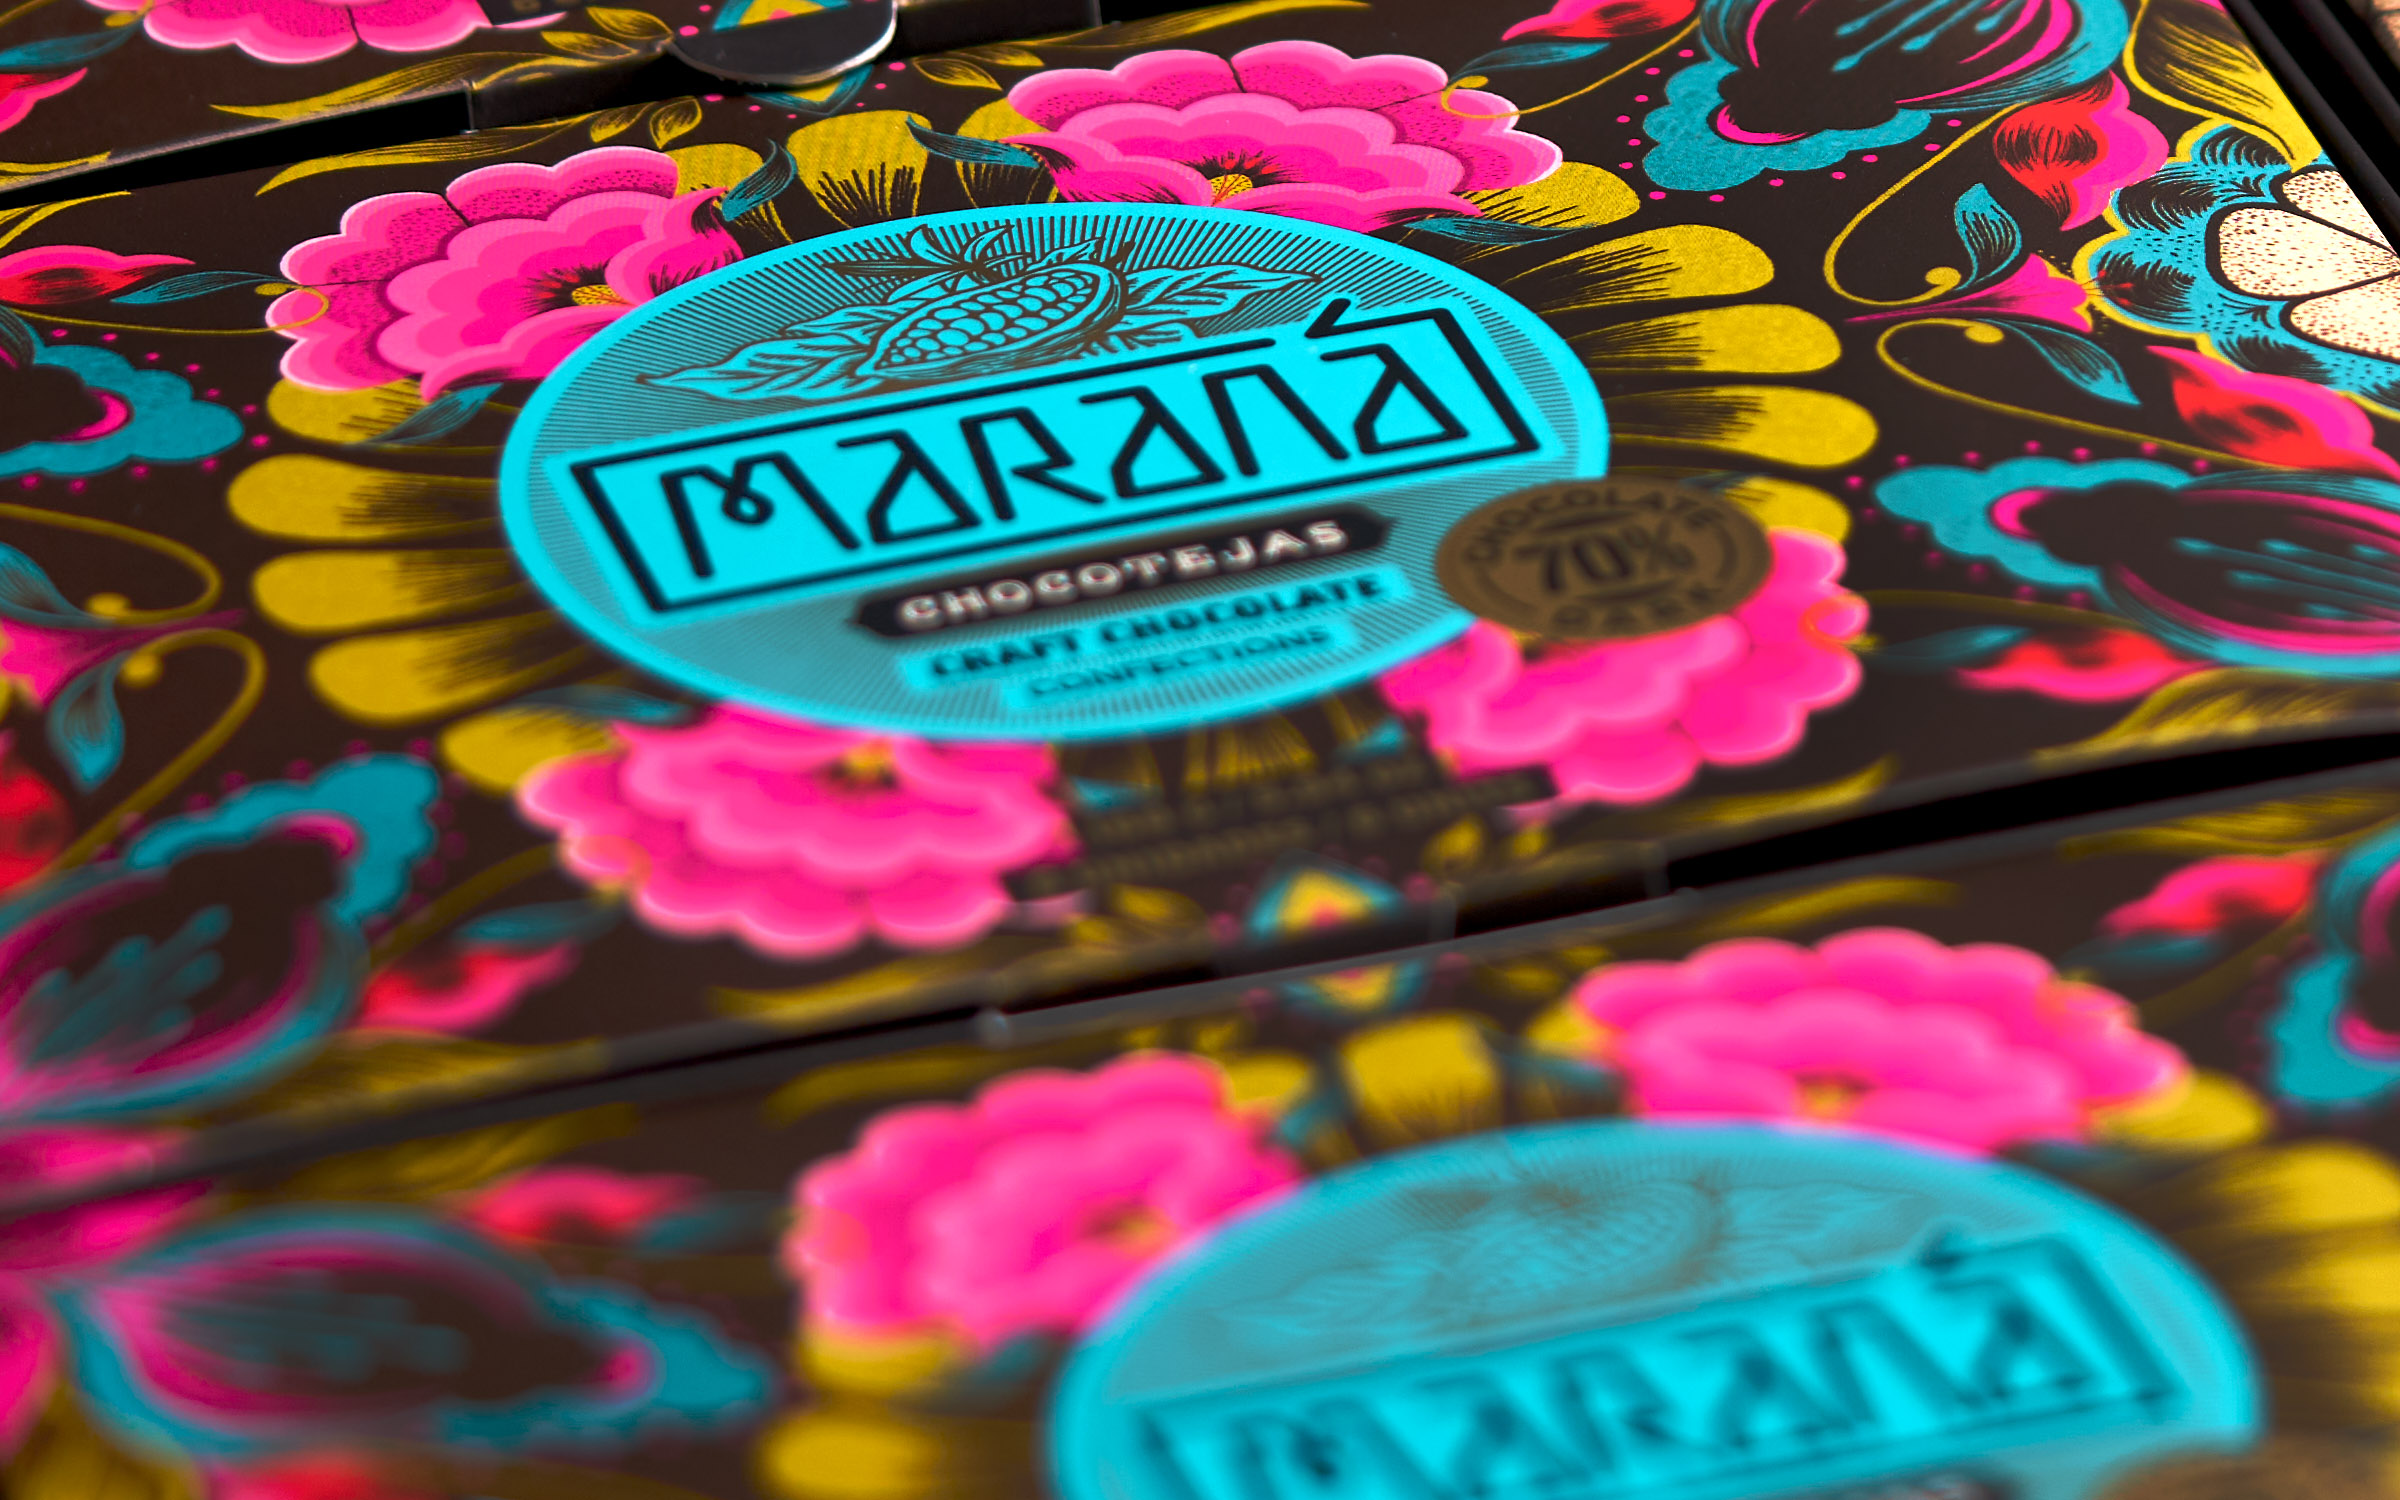 Icono Comunicadores Agency Create Packaging Design for New  Product of Maraná Chocotejas